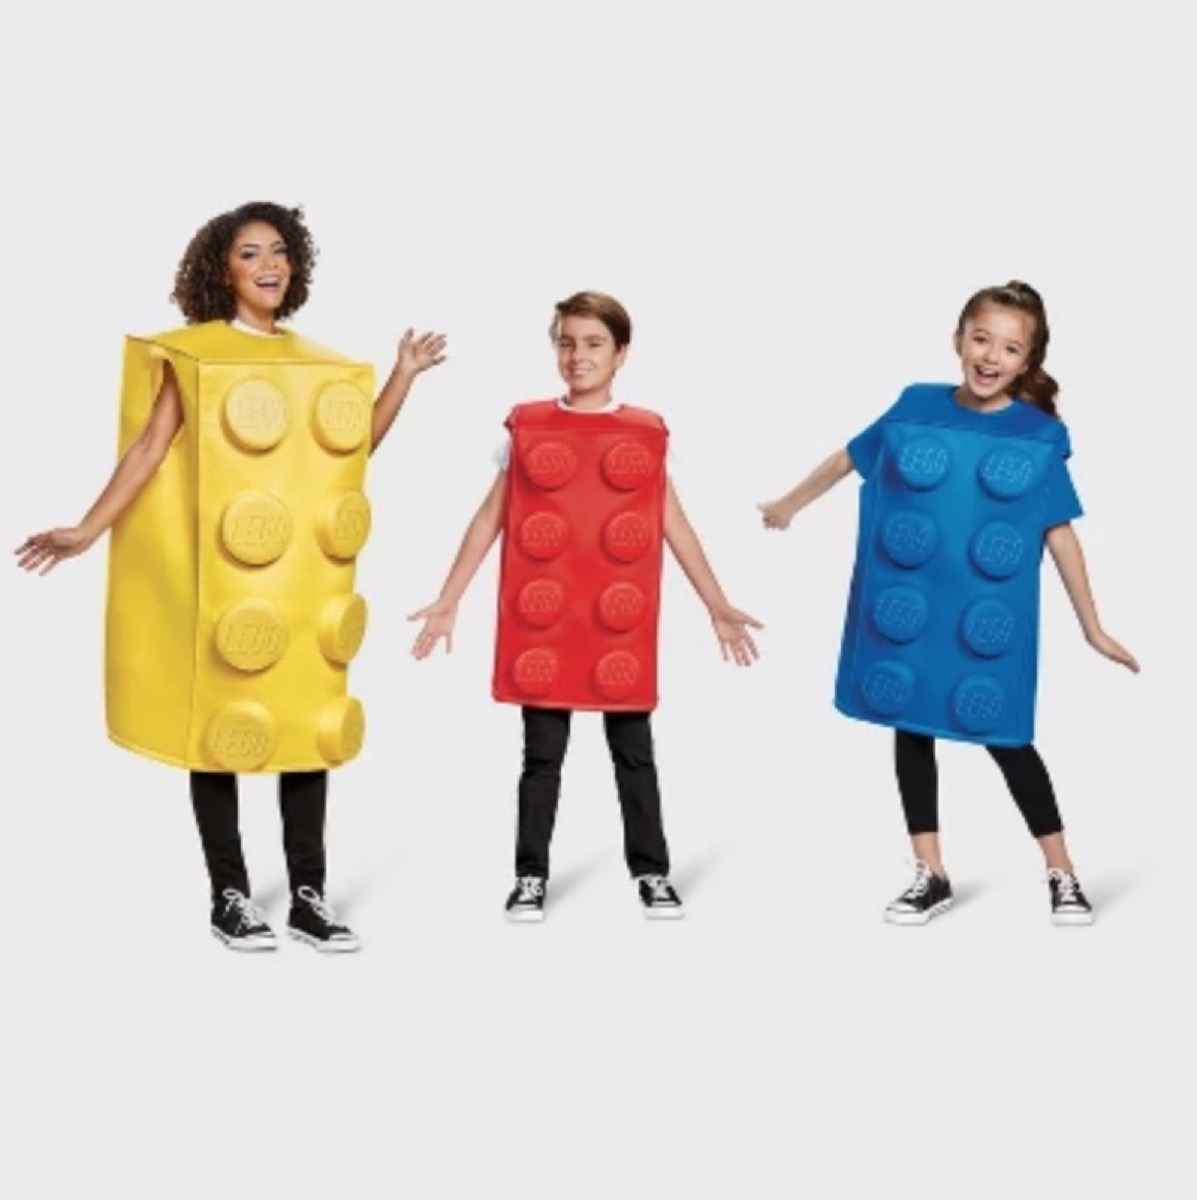 woman and two children in yellow, red, and blue lego brick costumes, family halloween costumes